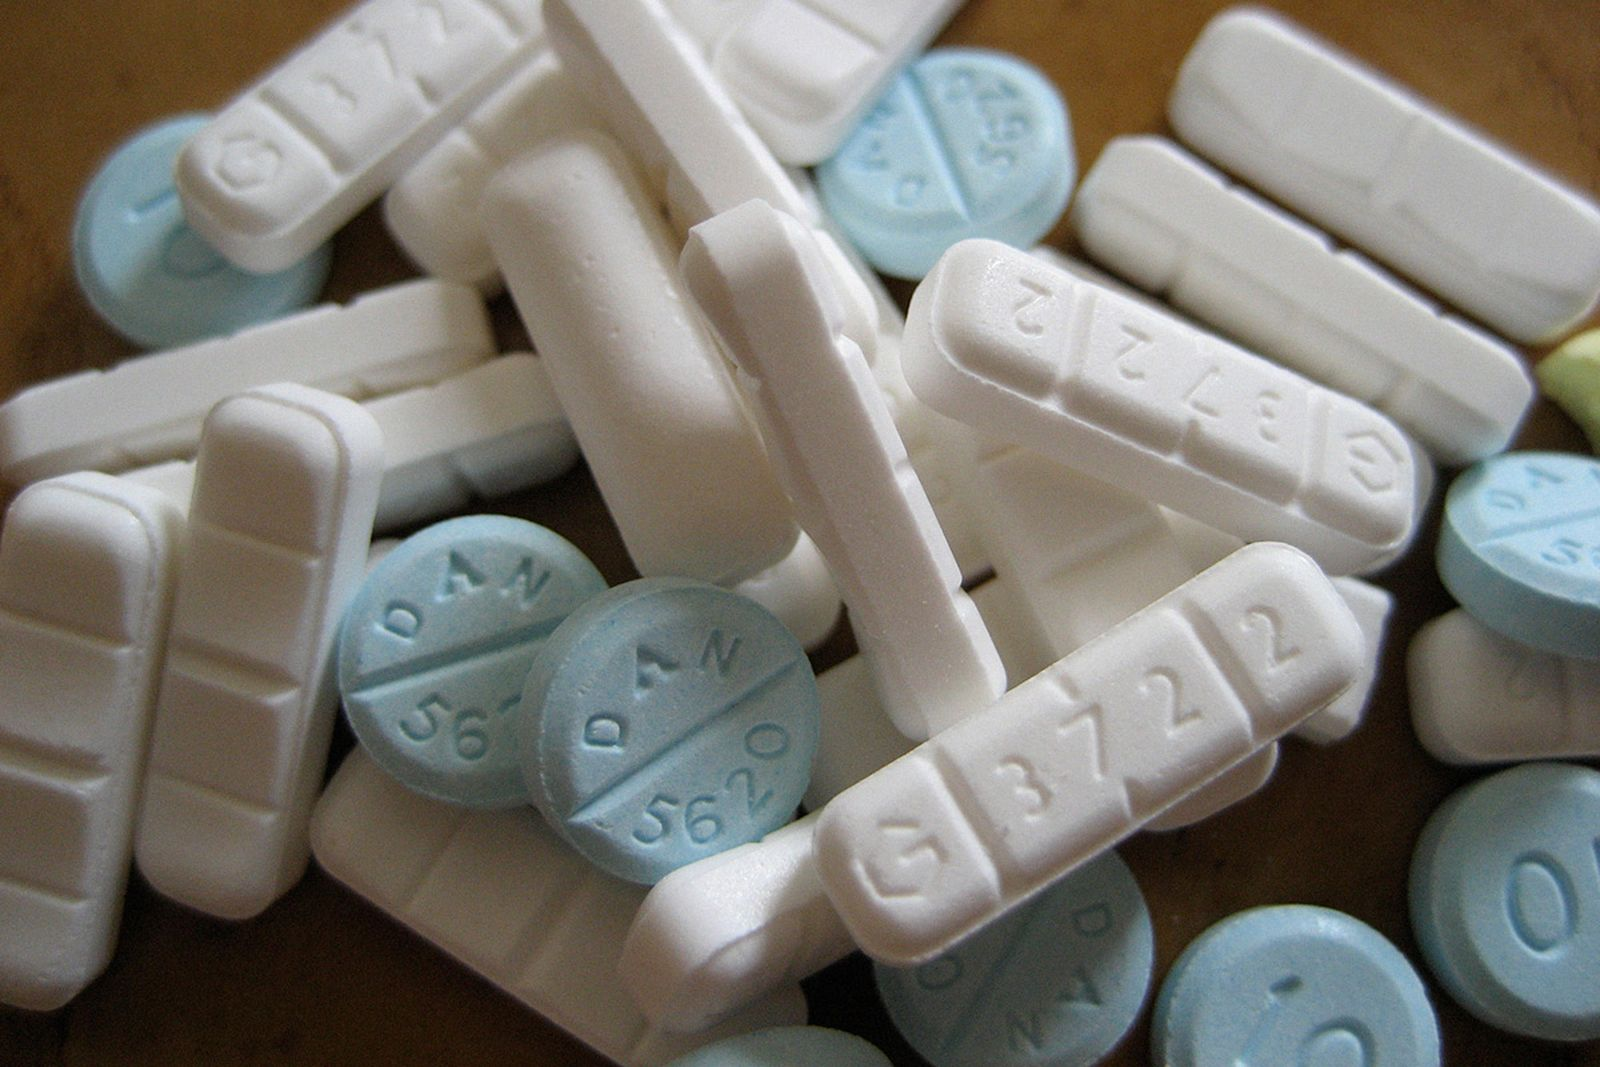 What Is Xanax & Why Are People Quitting It?